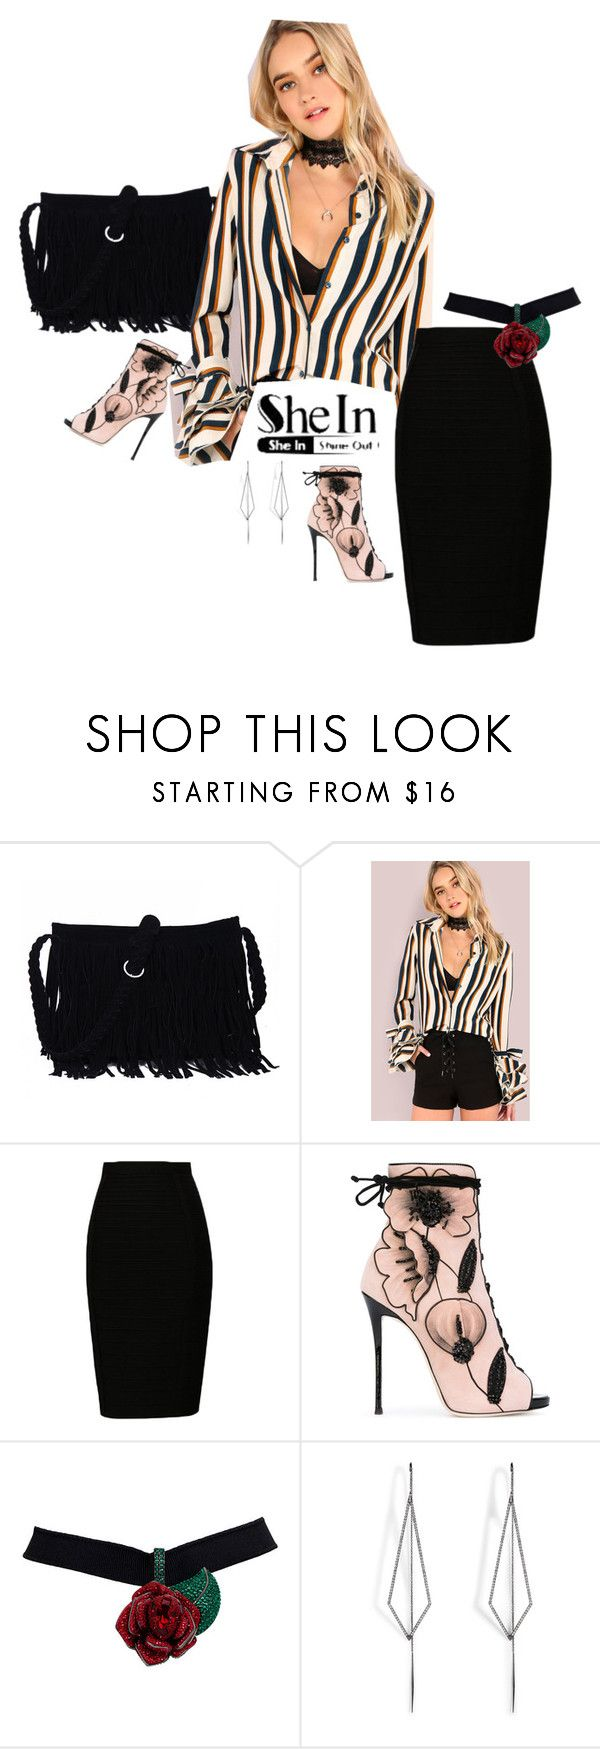 """Be real"" by rosecool ❤ liked on Polyvore featuring Giuseppe Zanotti and Diane Kordas"